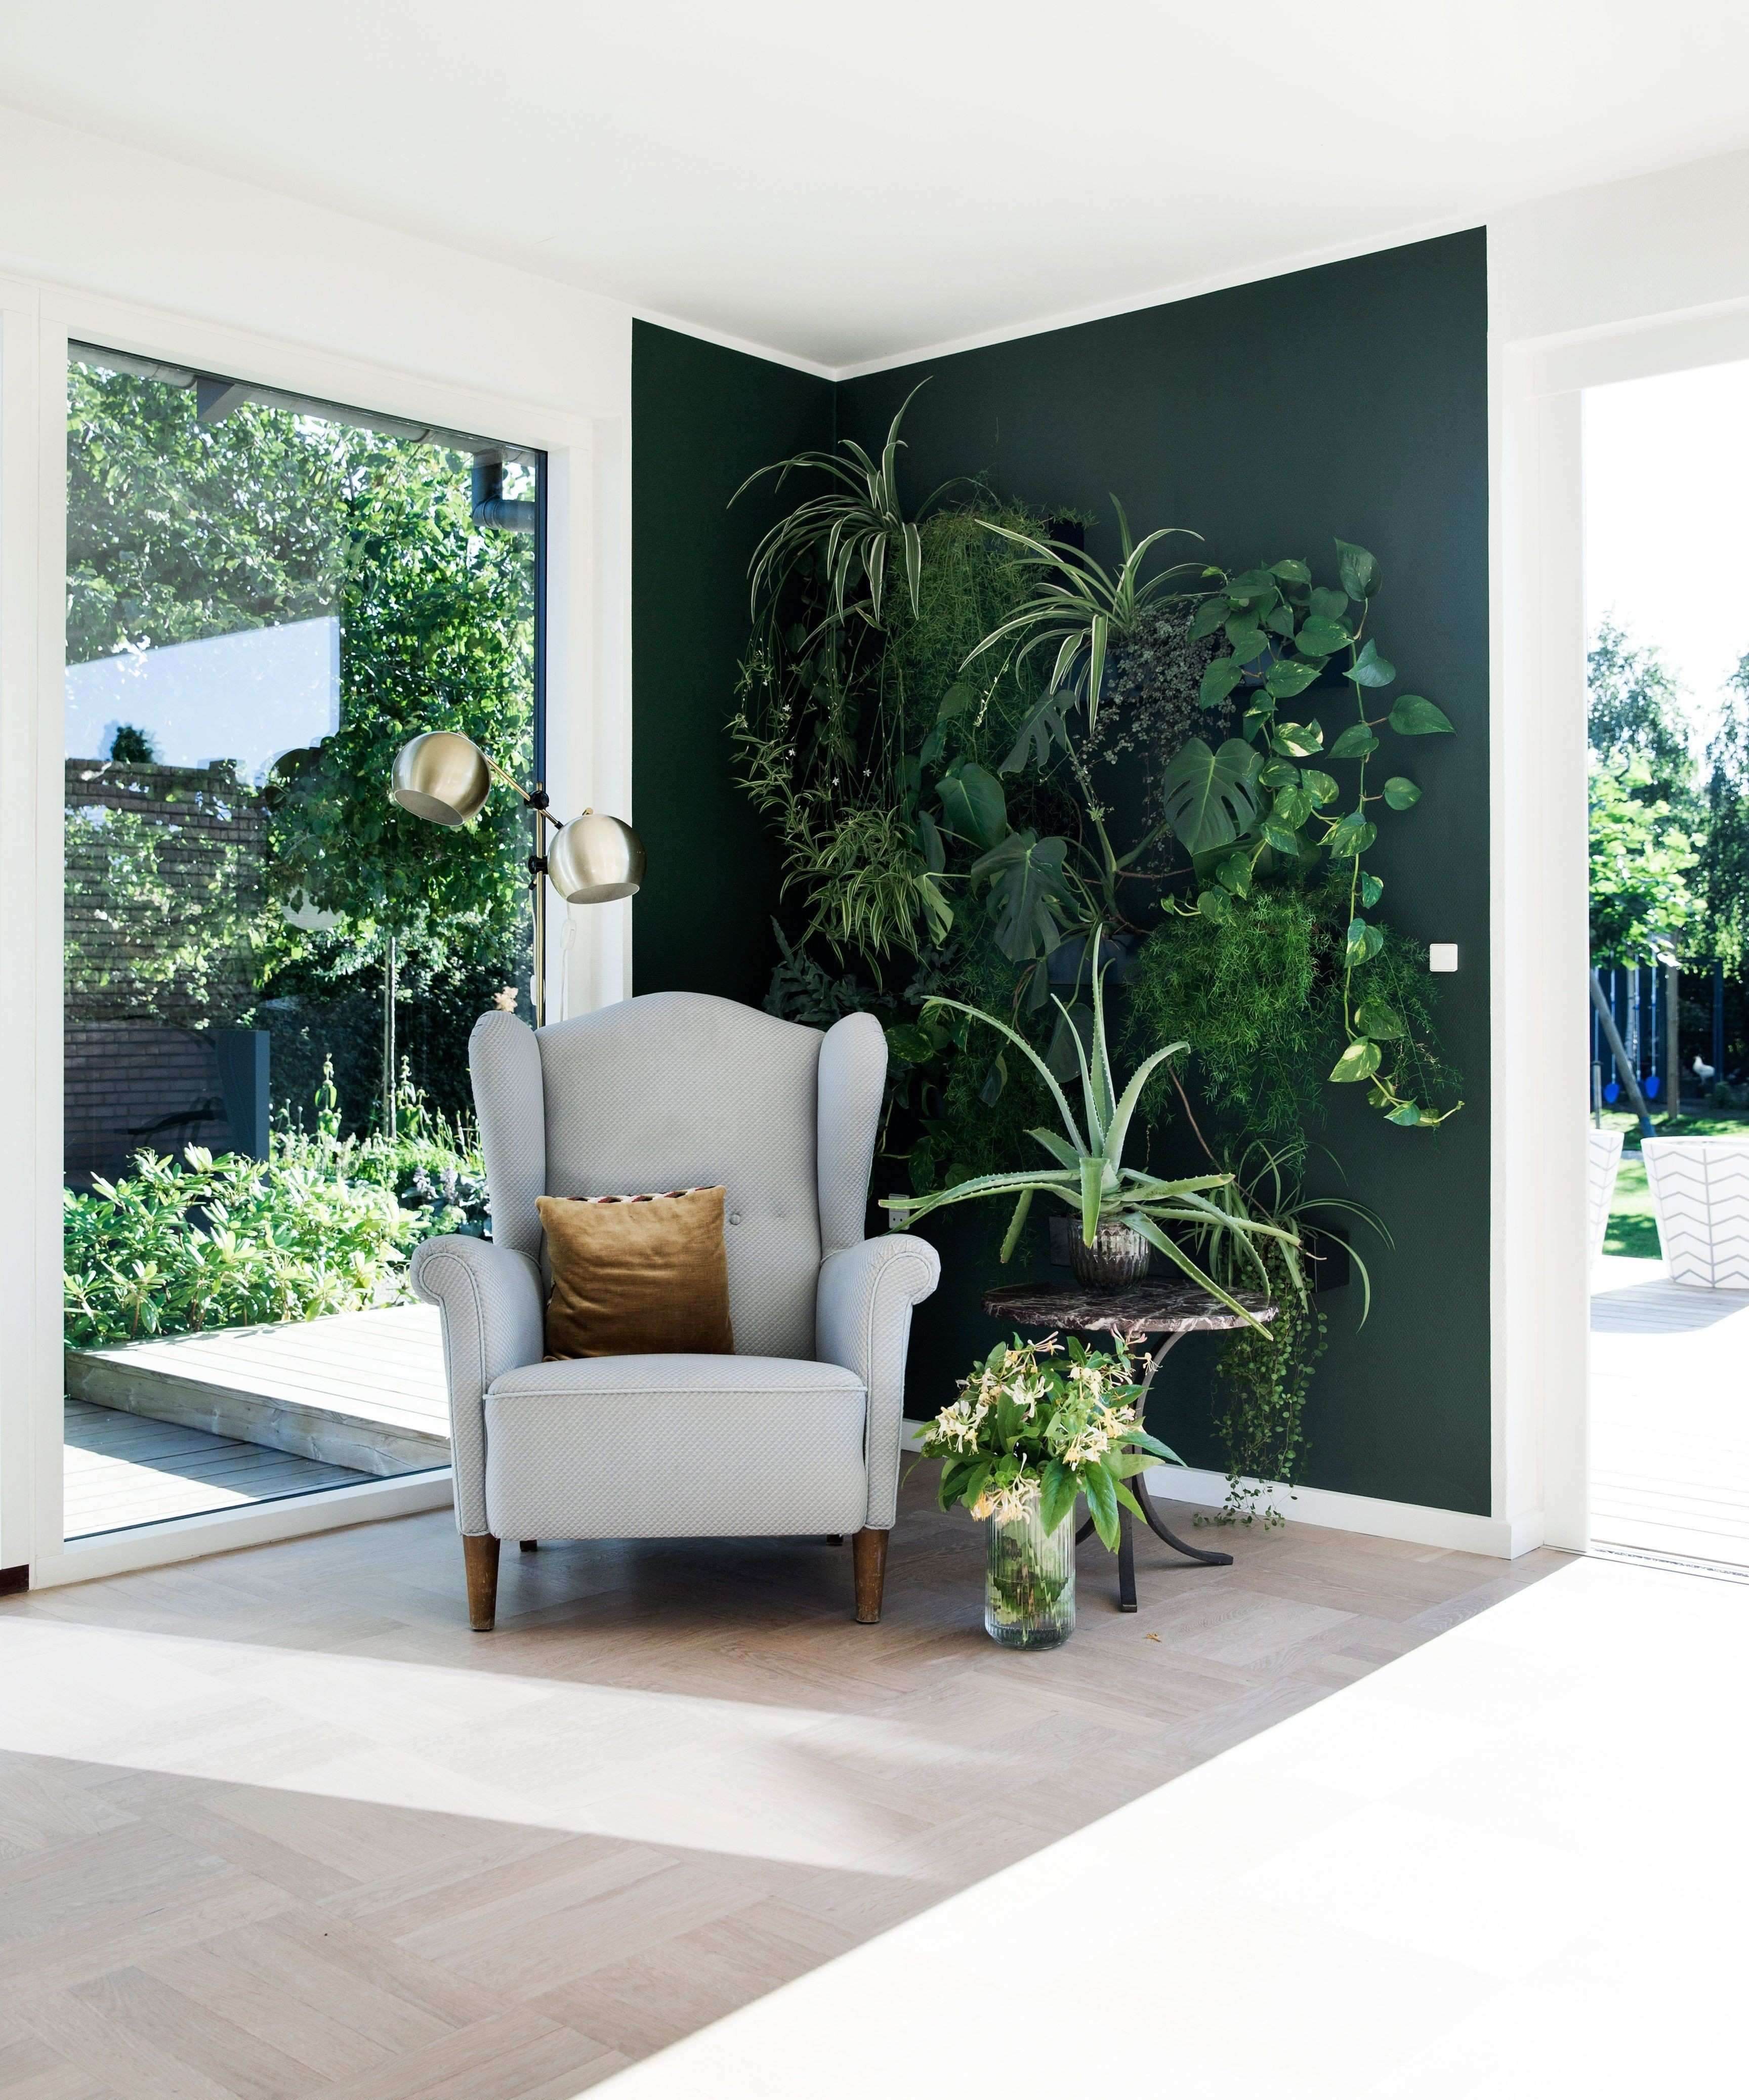 Lime Green Floor Vase Of Decorating Ideas for Living Rooms with Green Walls Inspirational Big with Decorating Ideas for Living Rooms with Green Walls Inspirational 5 Cool Design Trends Ing Out Of